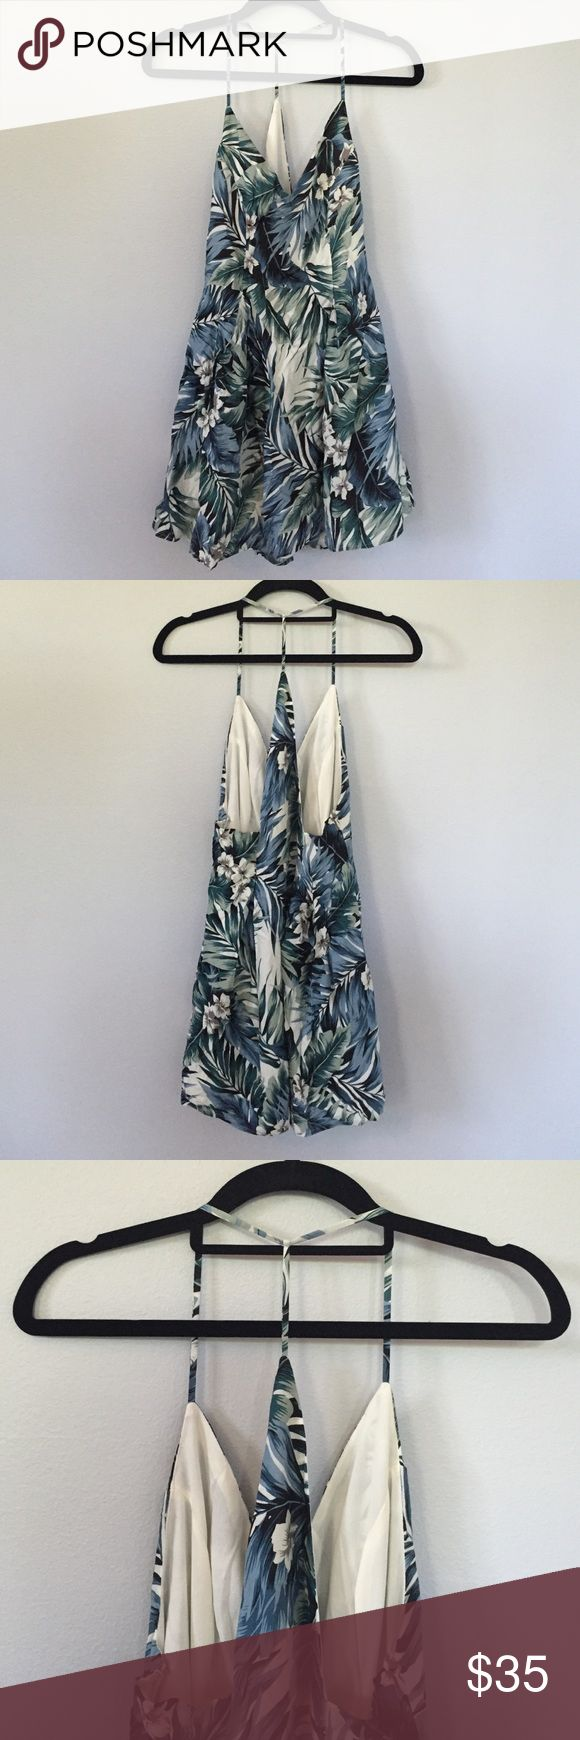 """NWT Tobi Hawaiian Print Dress This is the """"See You At Sunset"""" day dress from Tobi. Super cute light blue/green/ivory Hawaiian print mini dress perfect for summer. Unique and stylish open back design. It was originally $42 plus shipping + handling. Brand new, it has never been worn and tags are still on!  Tobi Dresses Mini"""